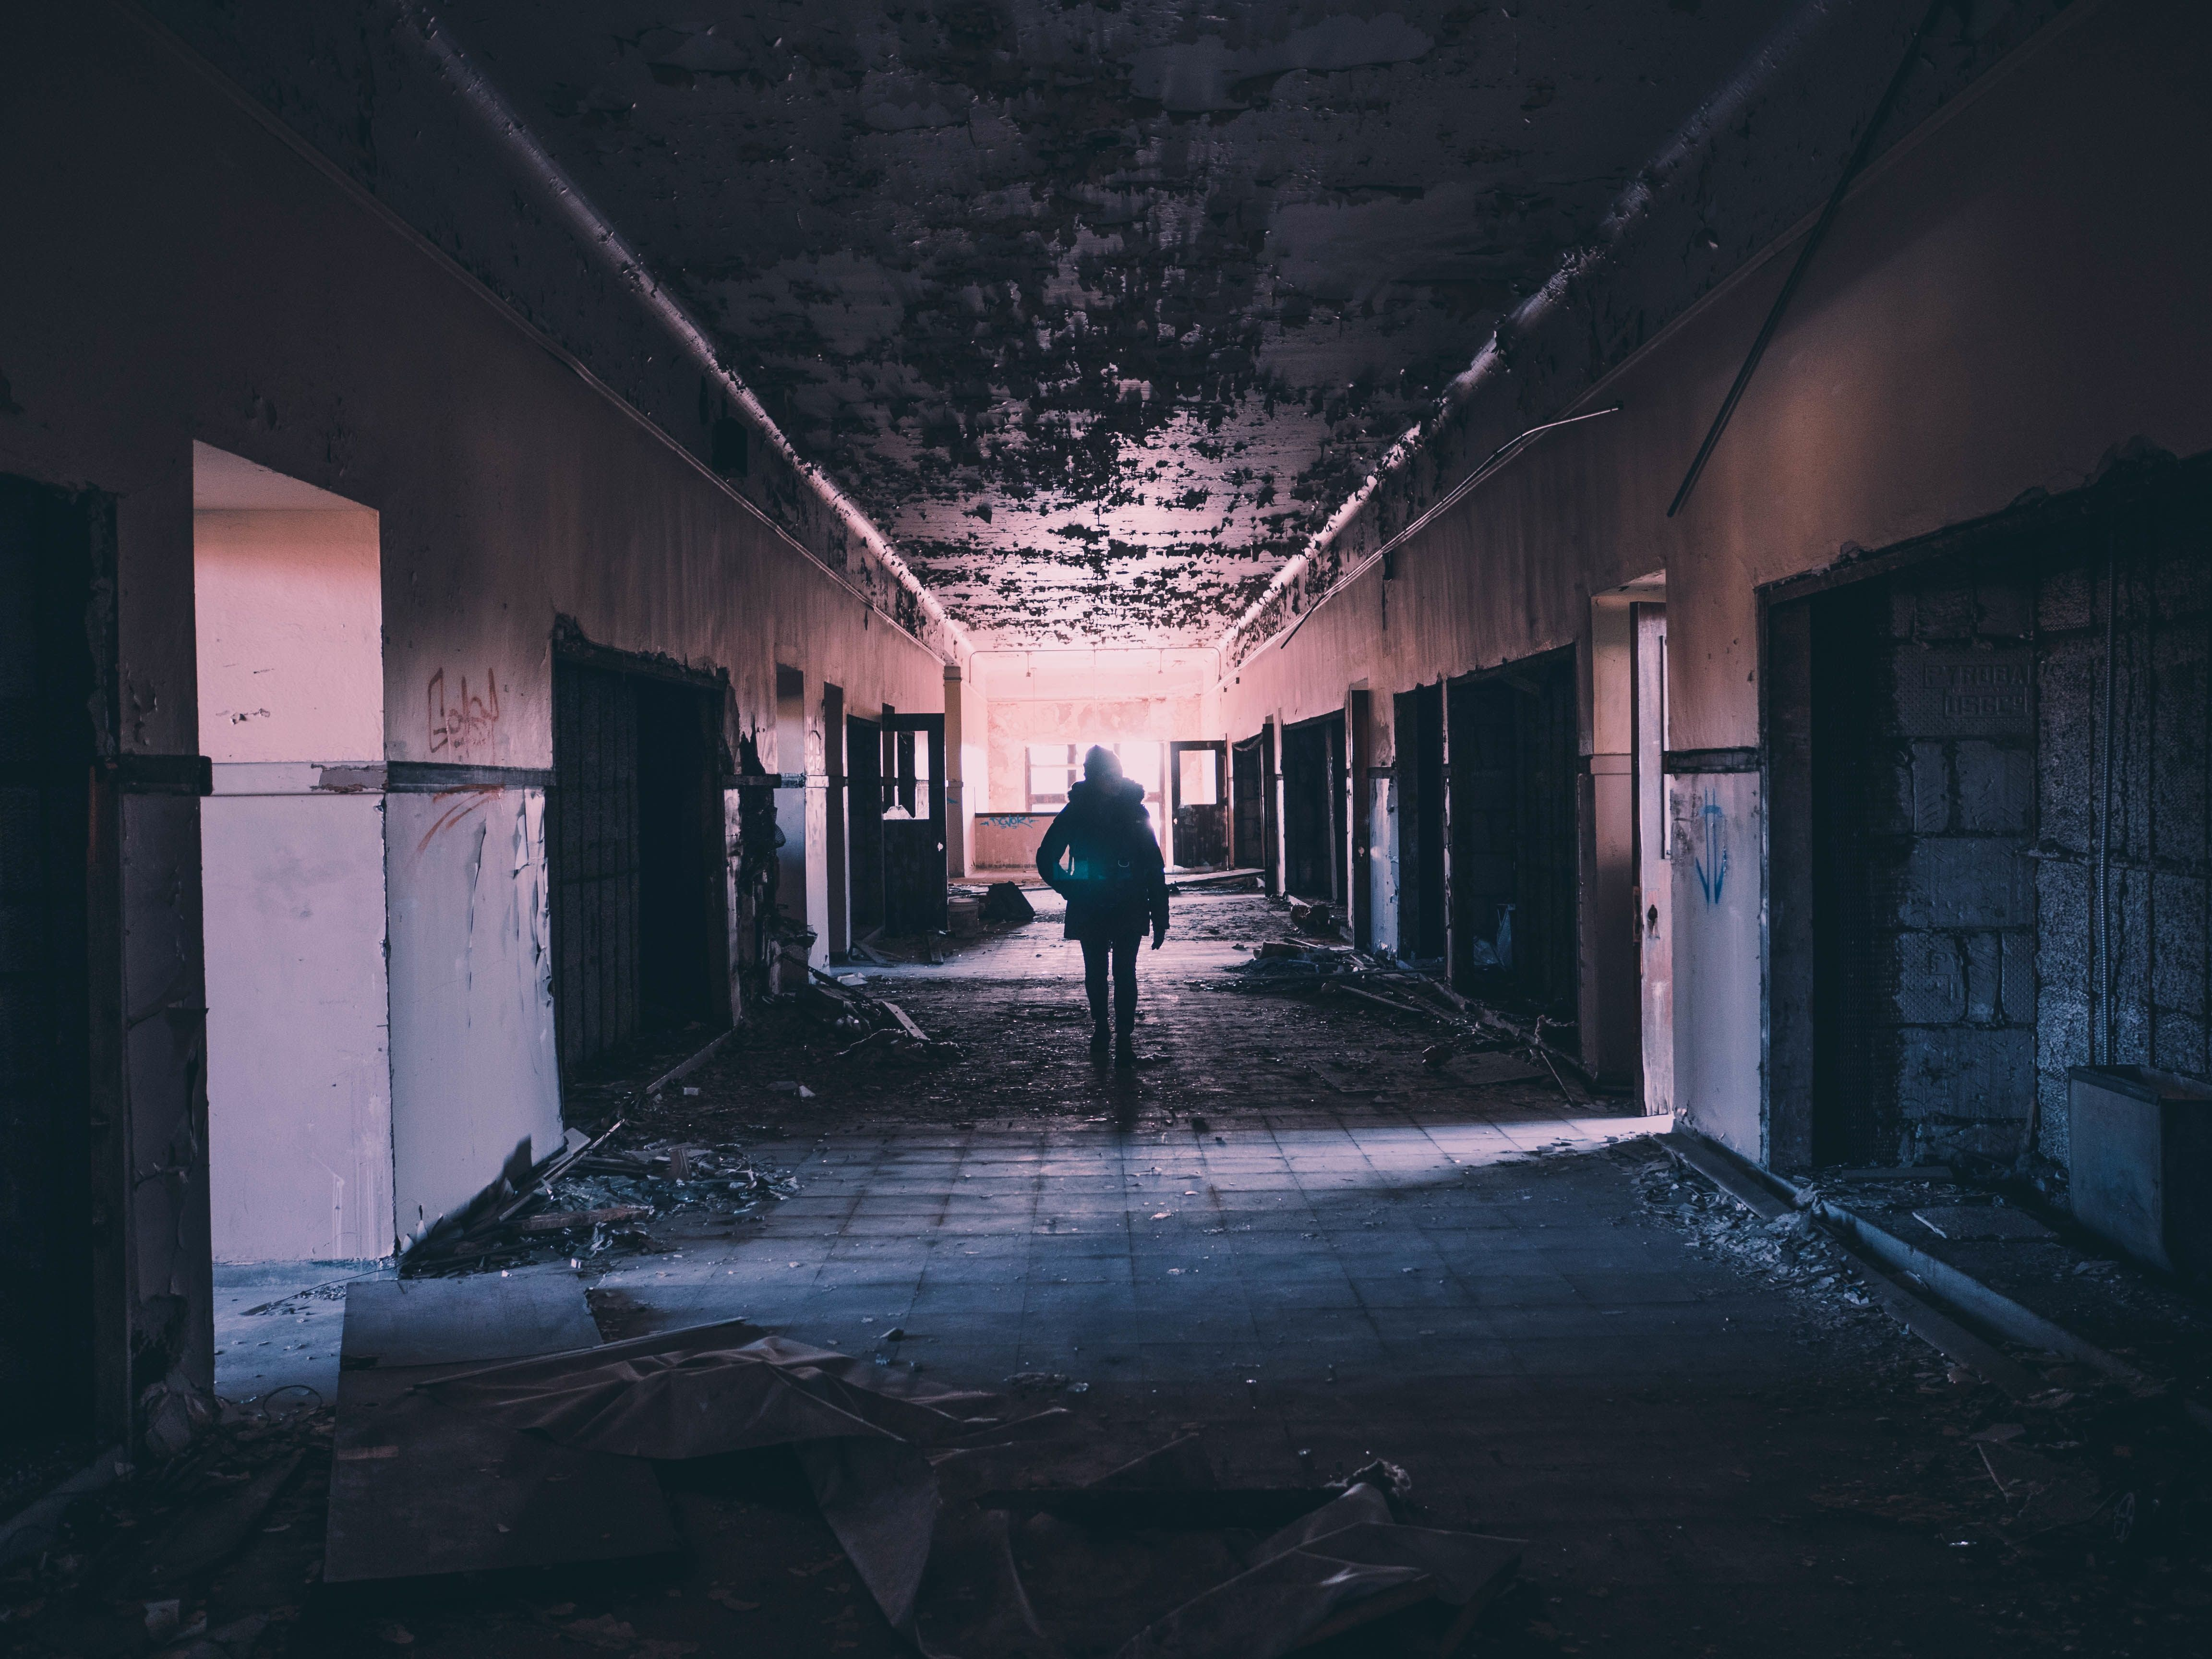 Writers! Check out this list of 6 abandoned locations that are perfect for your next story.